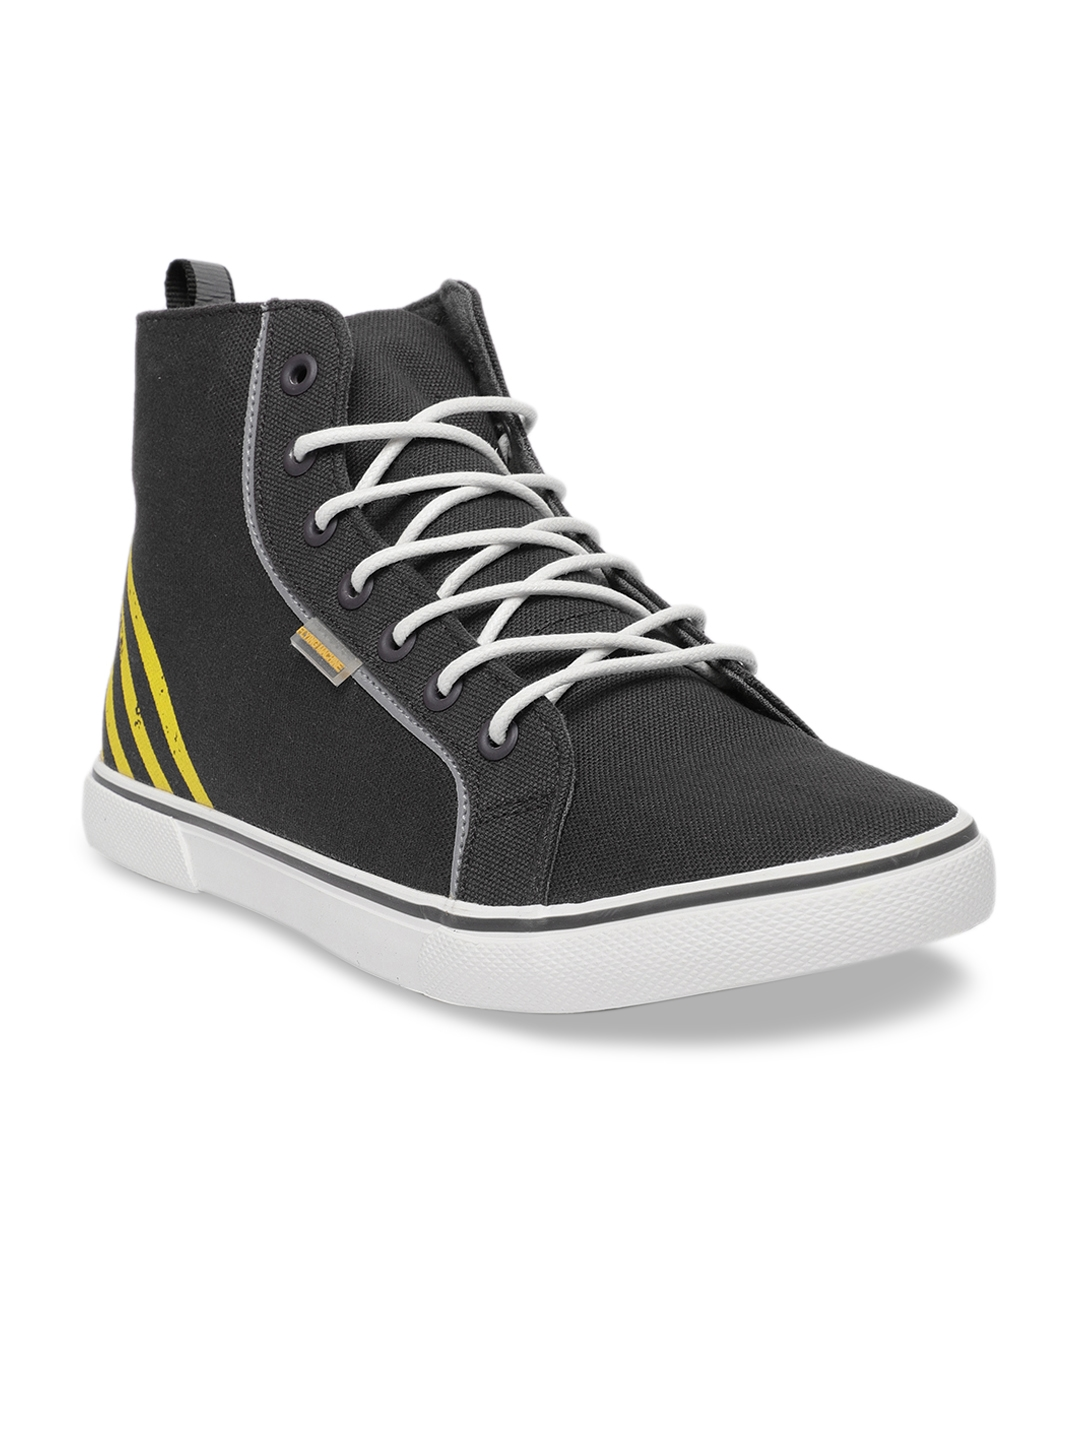 Flying Machine Men Grey Striped Synthetic Leather Mid Top Sneakers